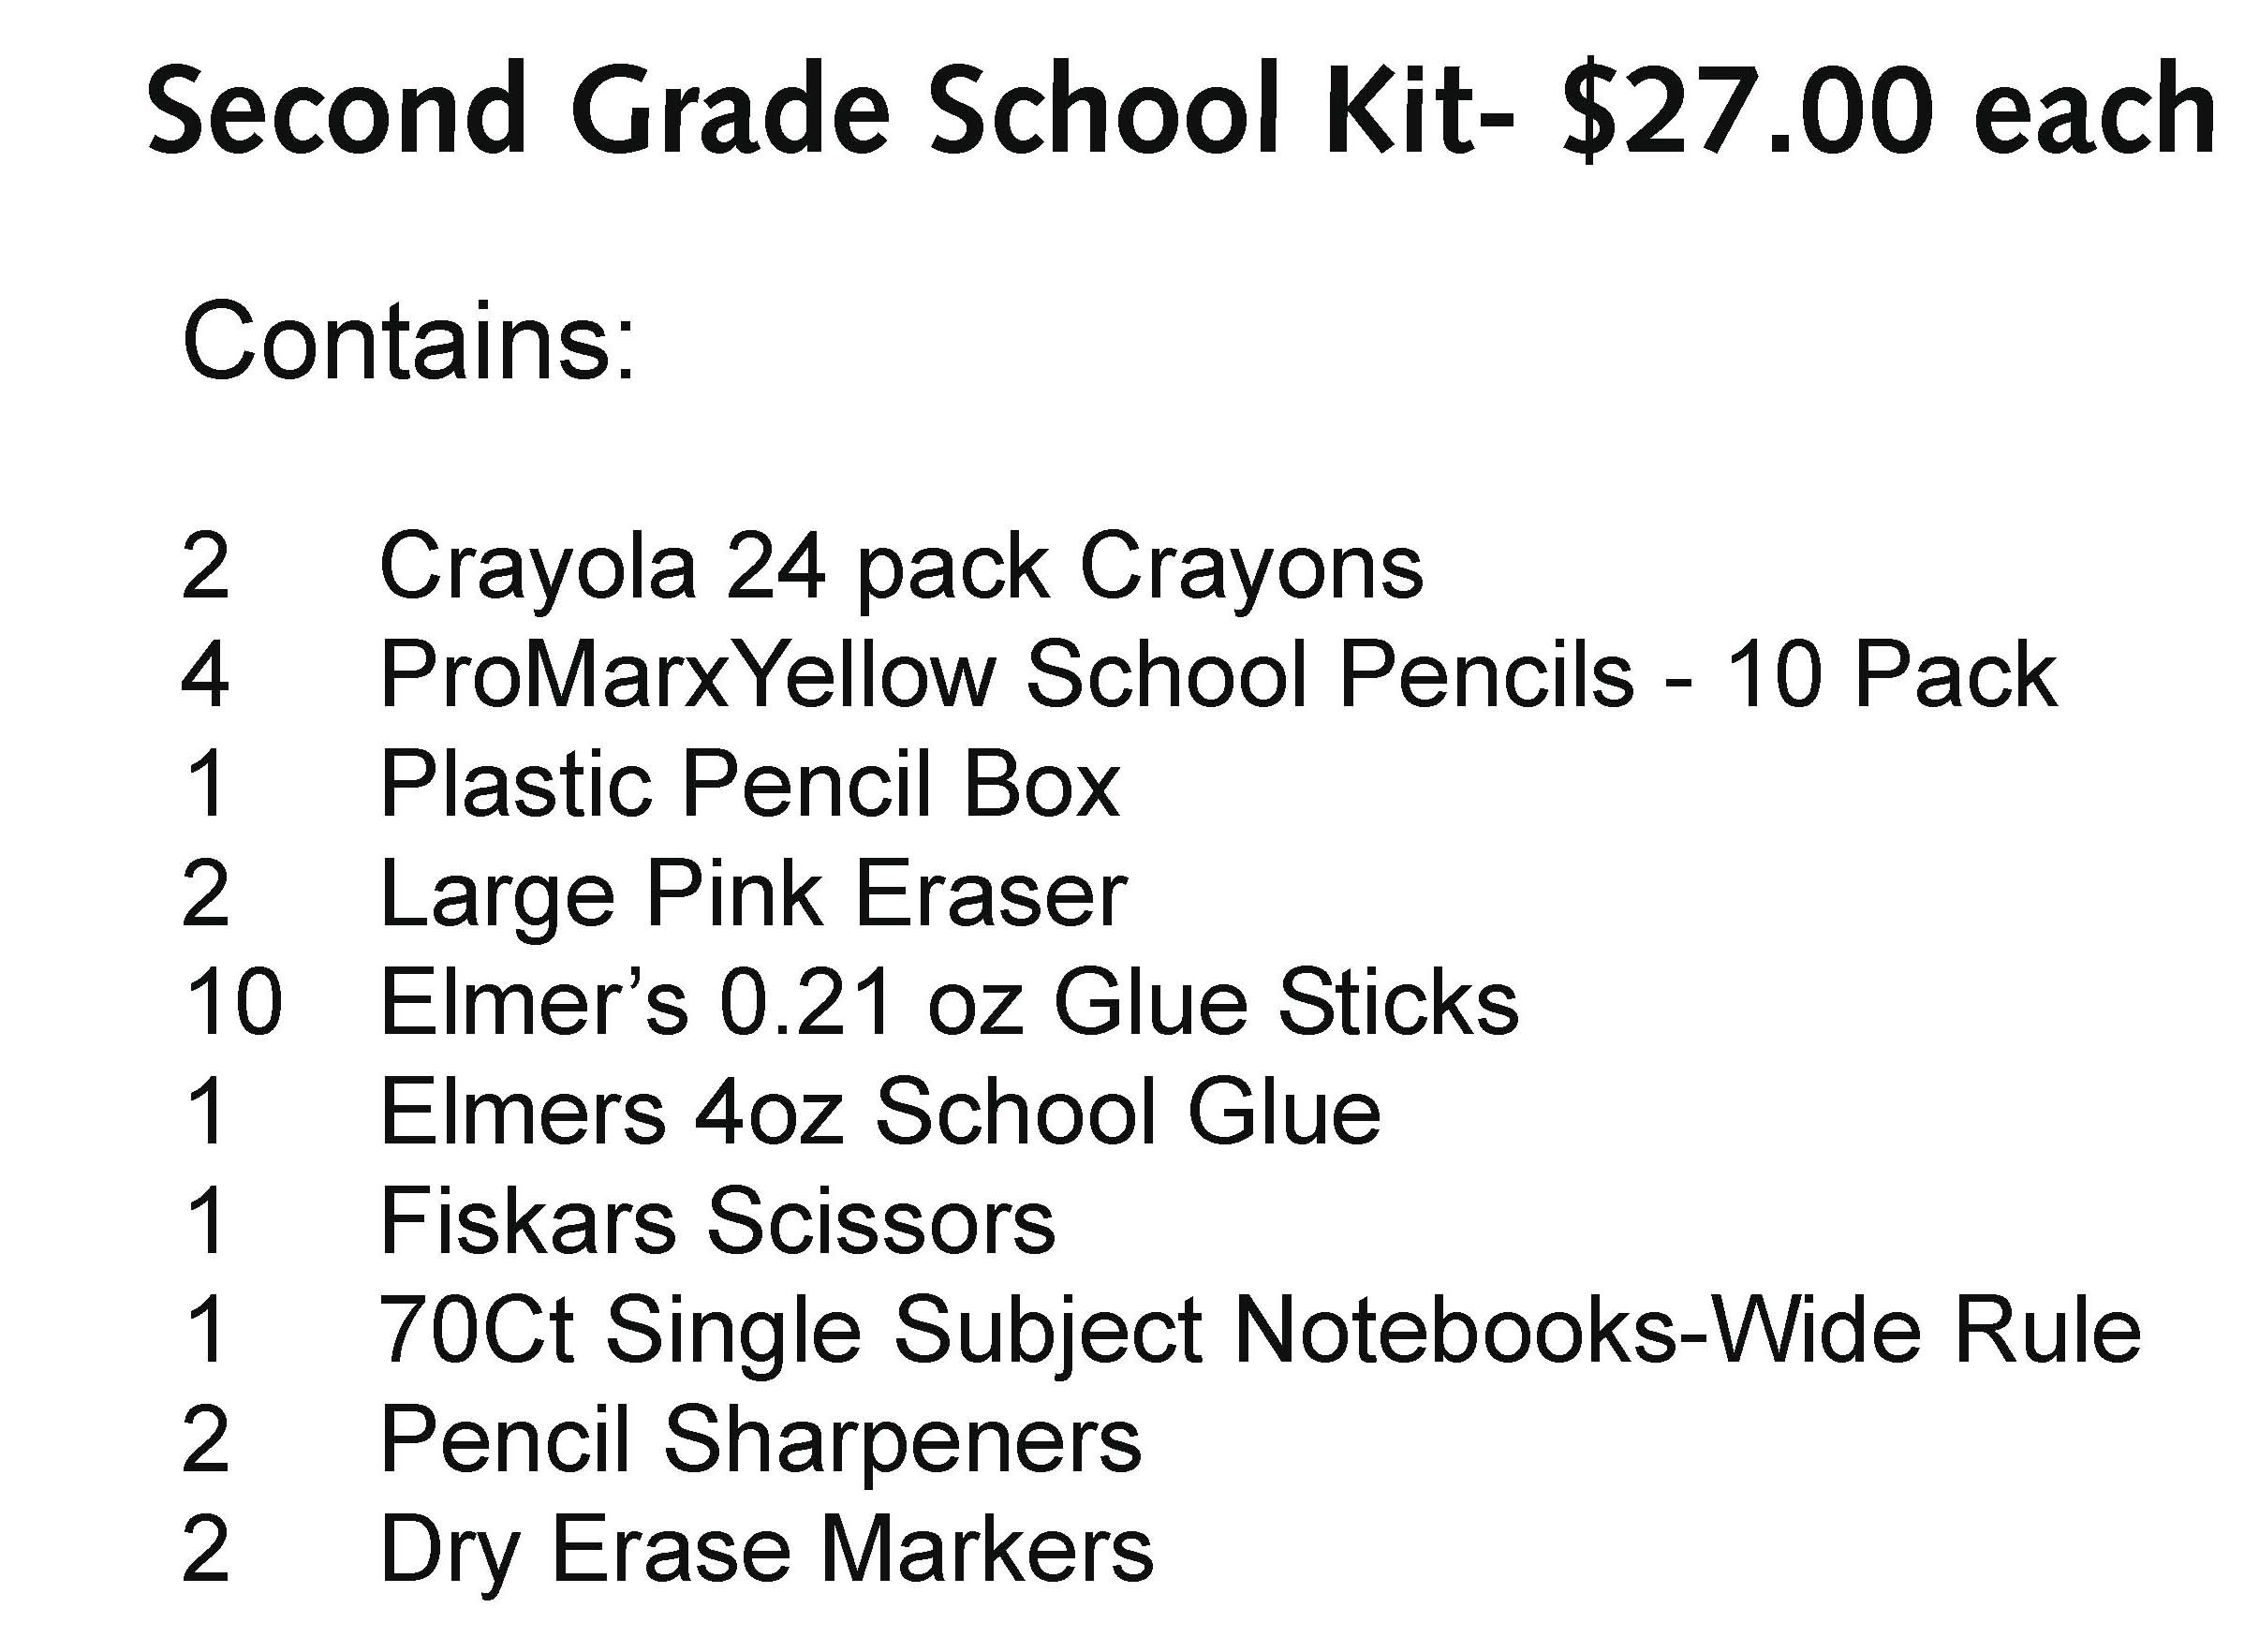 General Herkimer 2nd Grade Kit